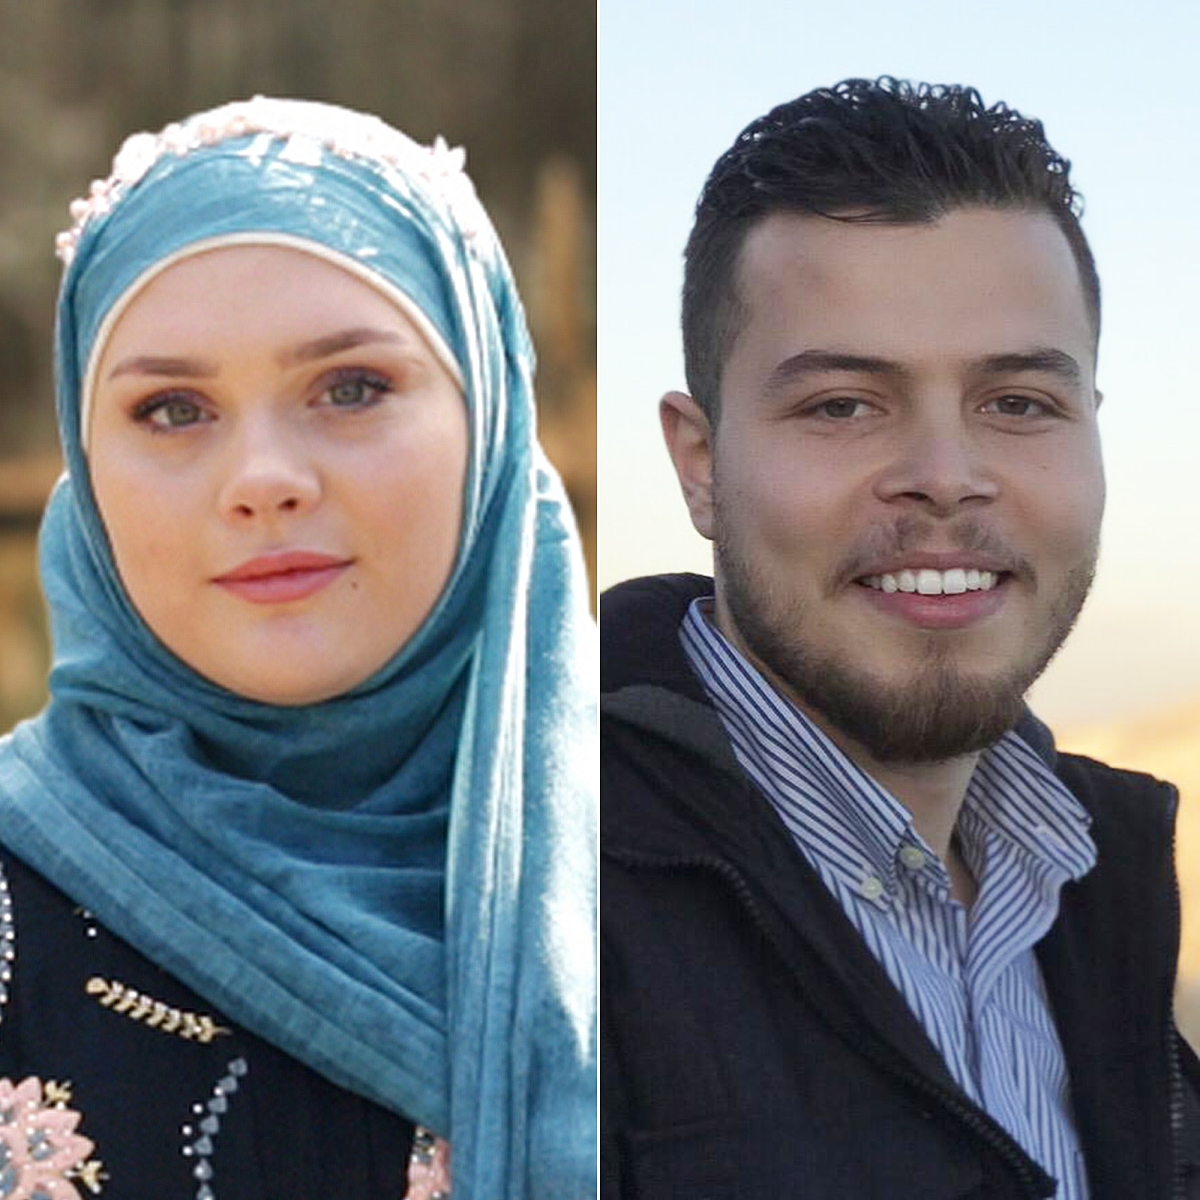 '90 Day Fiance: Before the 90 Days' spoilers: Are Avery and Omar still together, or did the 90 Day Fiance couple split?